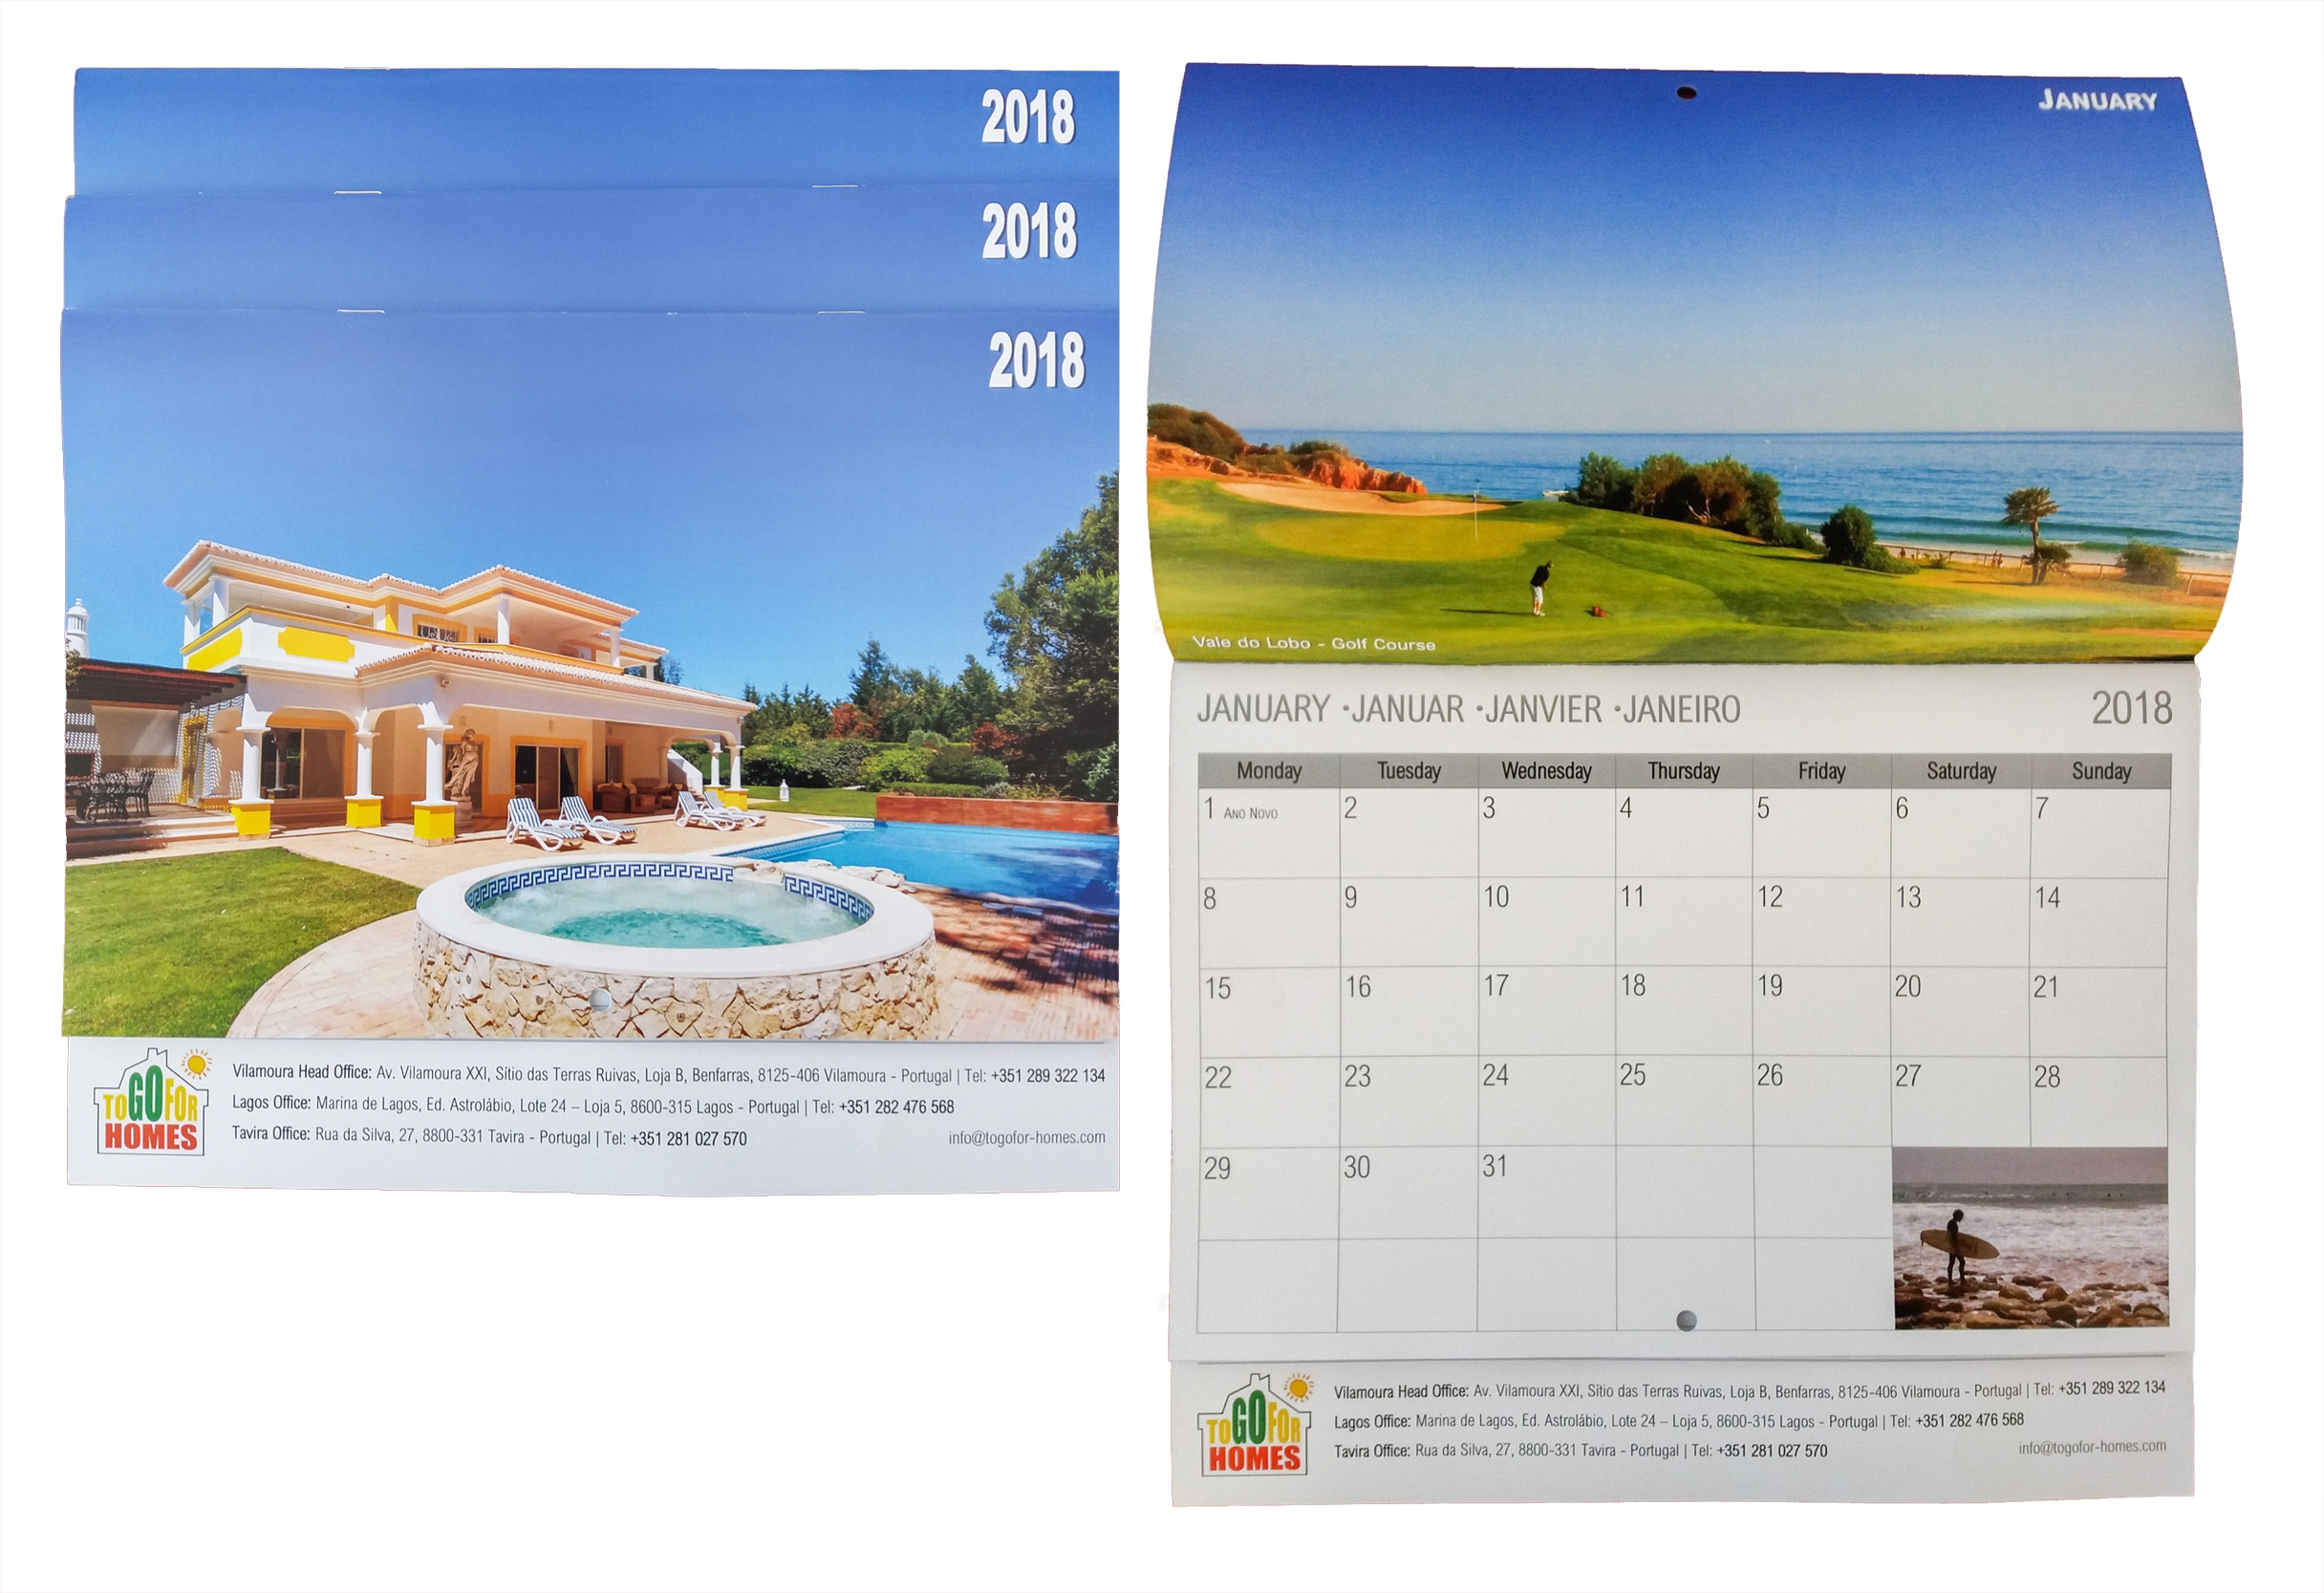 2018 Togofor Homes Calendar